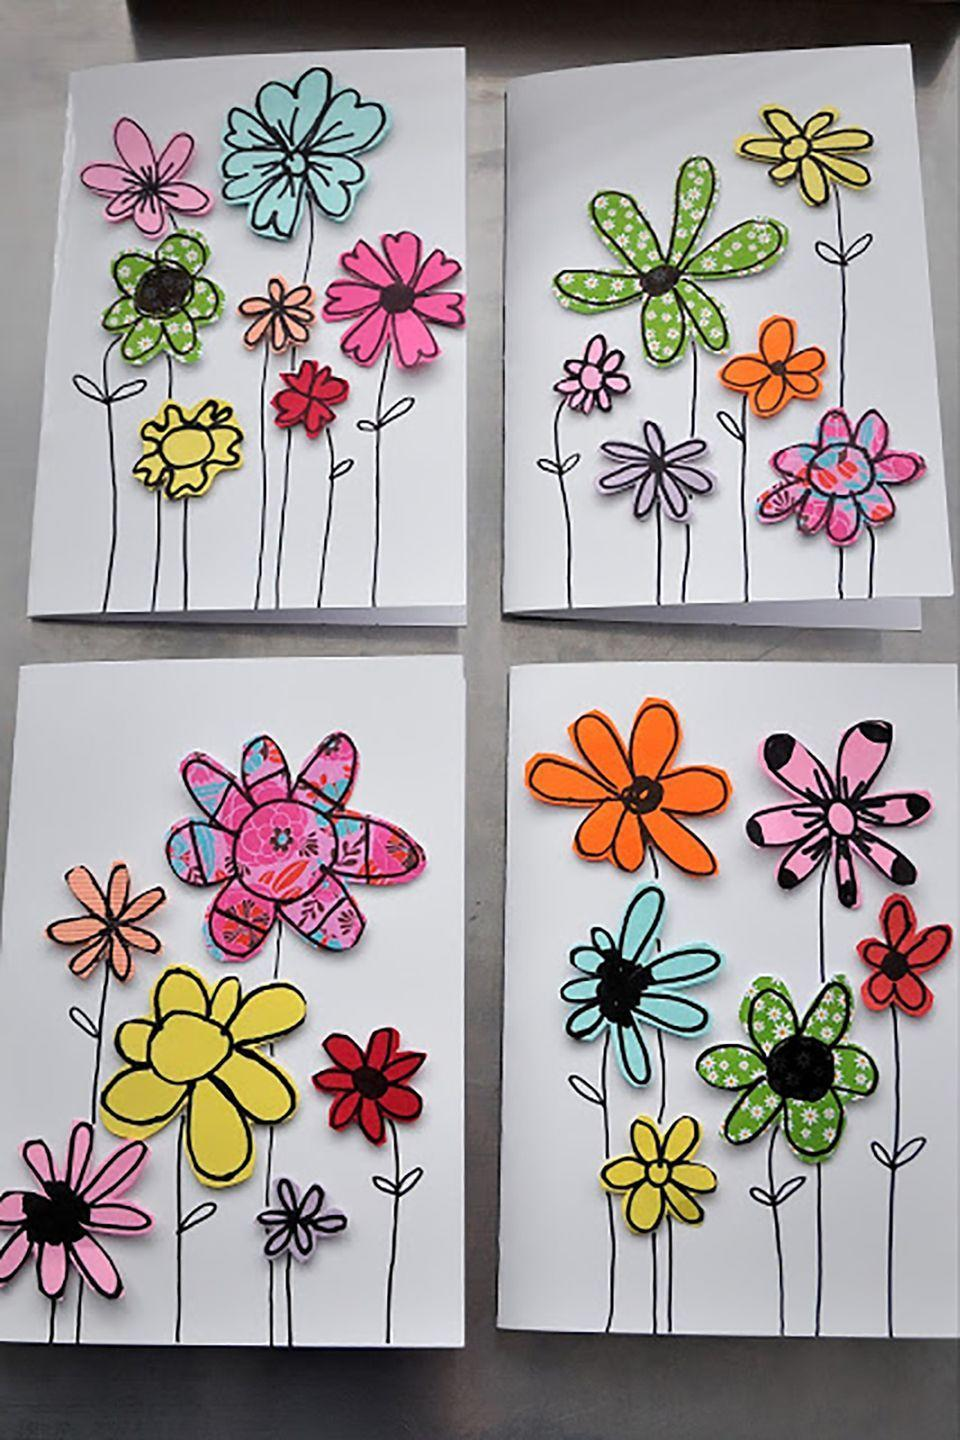 "<p>Use old pieces of scrapbook paper, wrapping paper, or card stock and have the kids draw flowers of all shapes and sizes. The cut-out shapes look absolutely darling on Mother's Day cards.</p><p><strong>Get the tutorial at <a href=""http://mamaisdreaming.blogspot.co.uk/2015/07/kids-craft-paper-scraps-greeting-cards.html"" rel=""nofollow noopener"" target=""_blank"" data-ylk=""slk:Mama Is Dreaming"" class=""link rapid-noclick-resp"">Mama Is Dreaming</a>. </strong></p>"